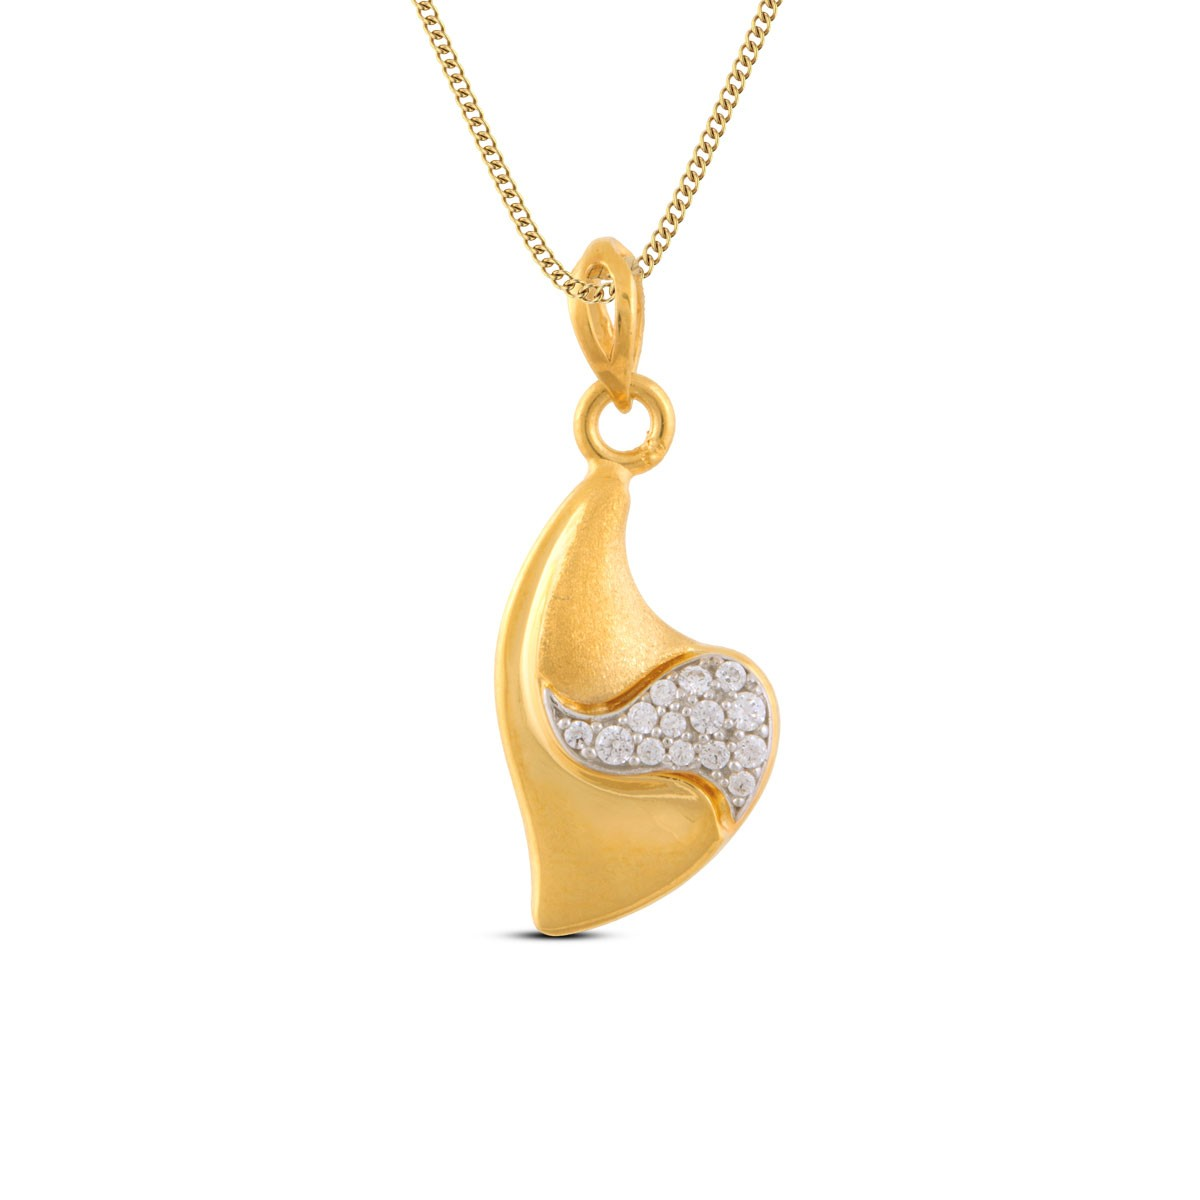 Ding-Dong Gold Pendant